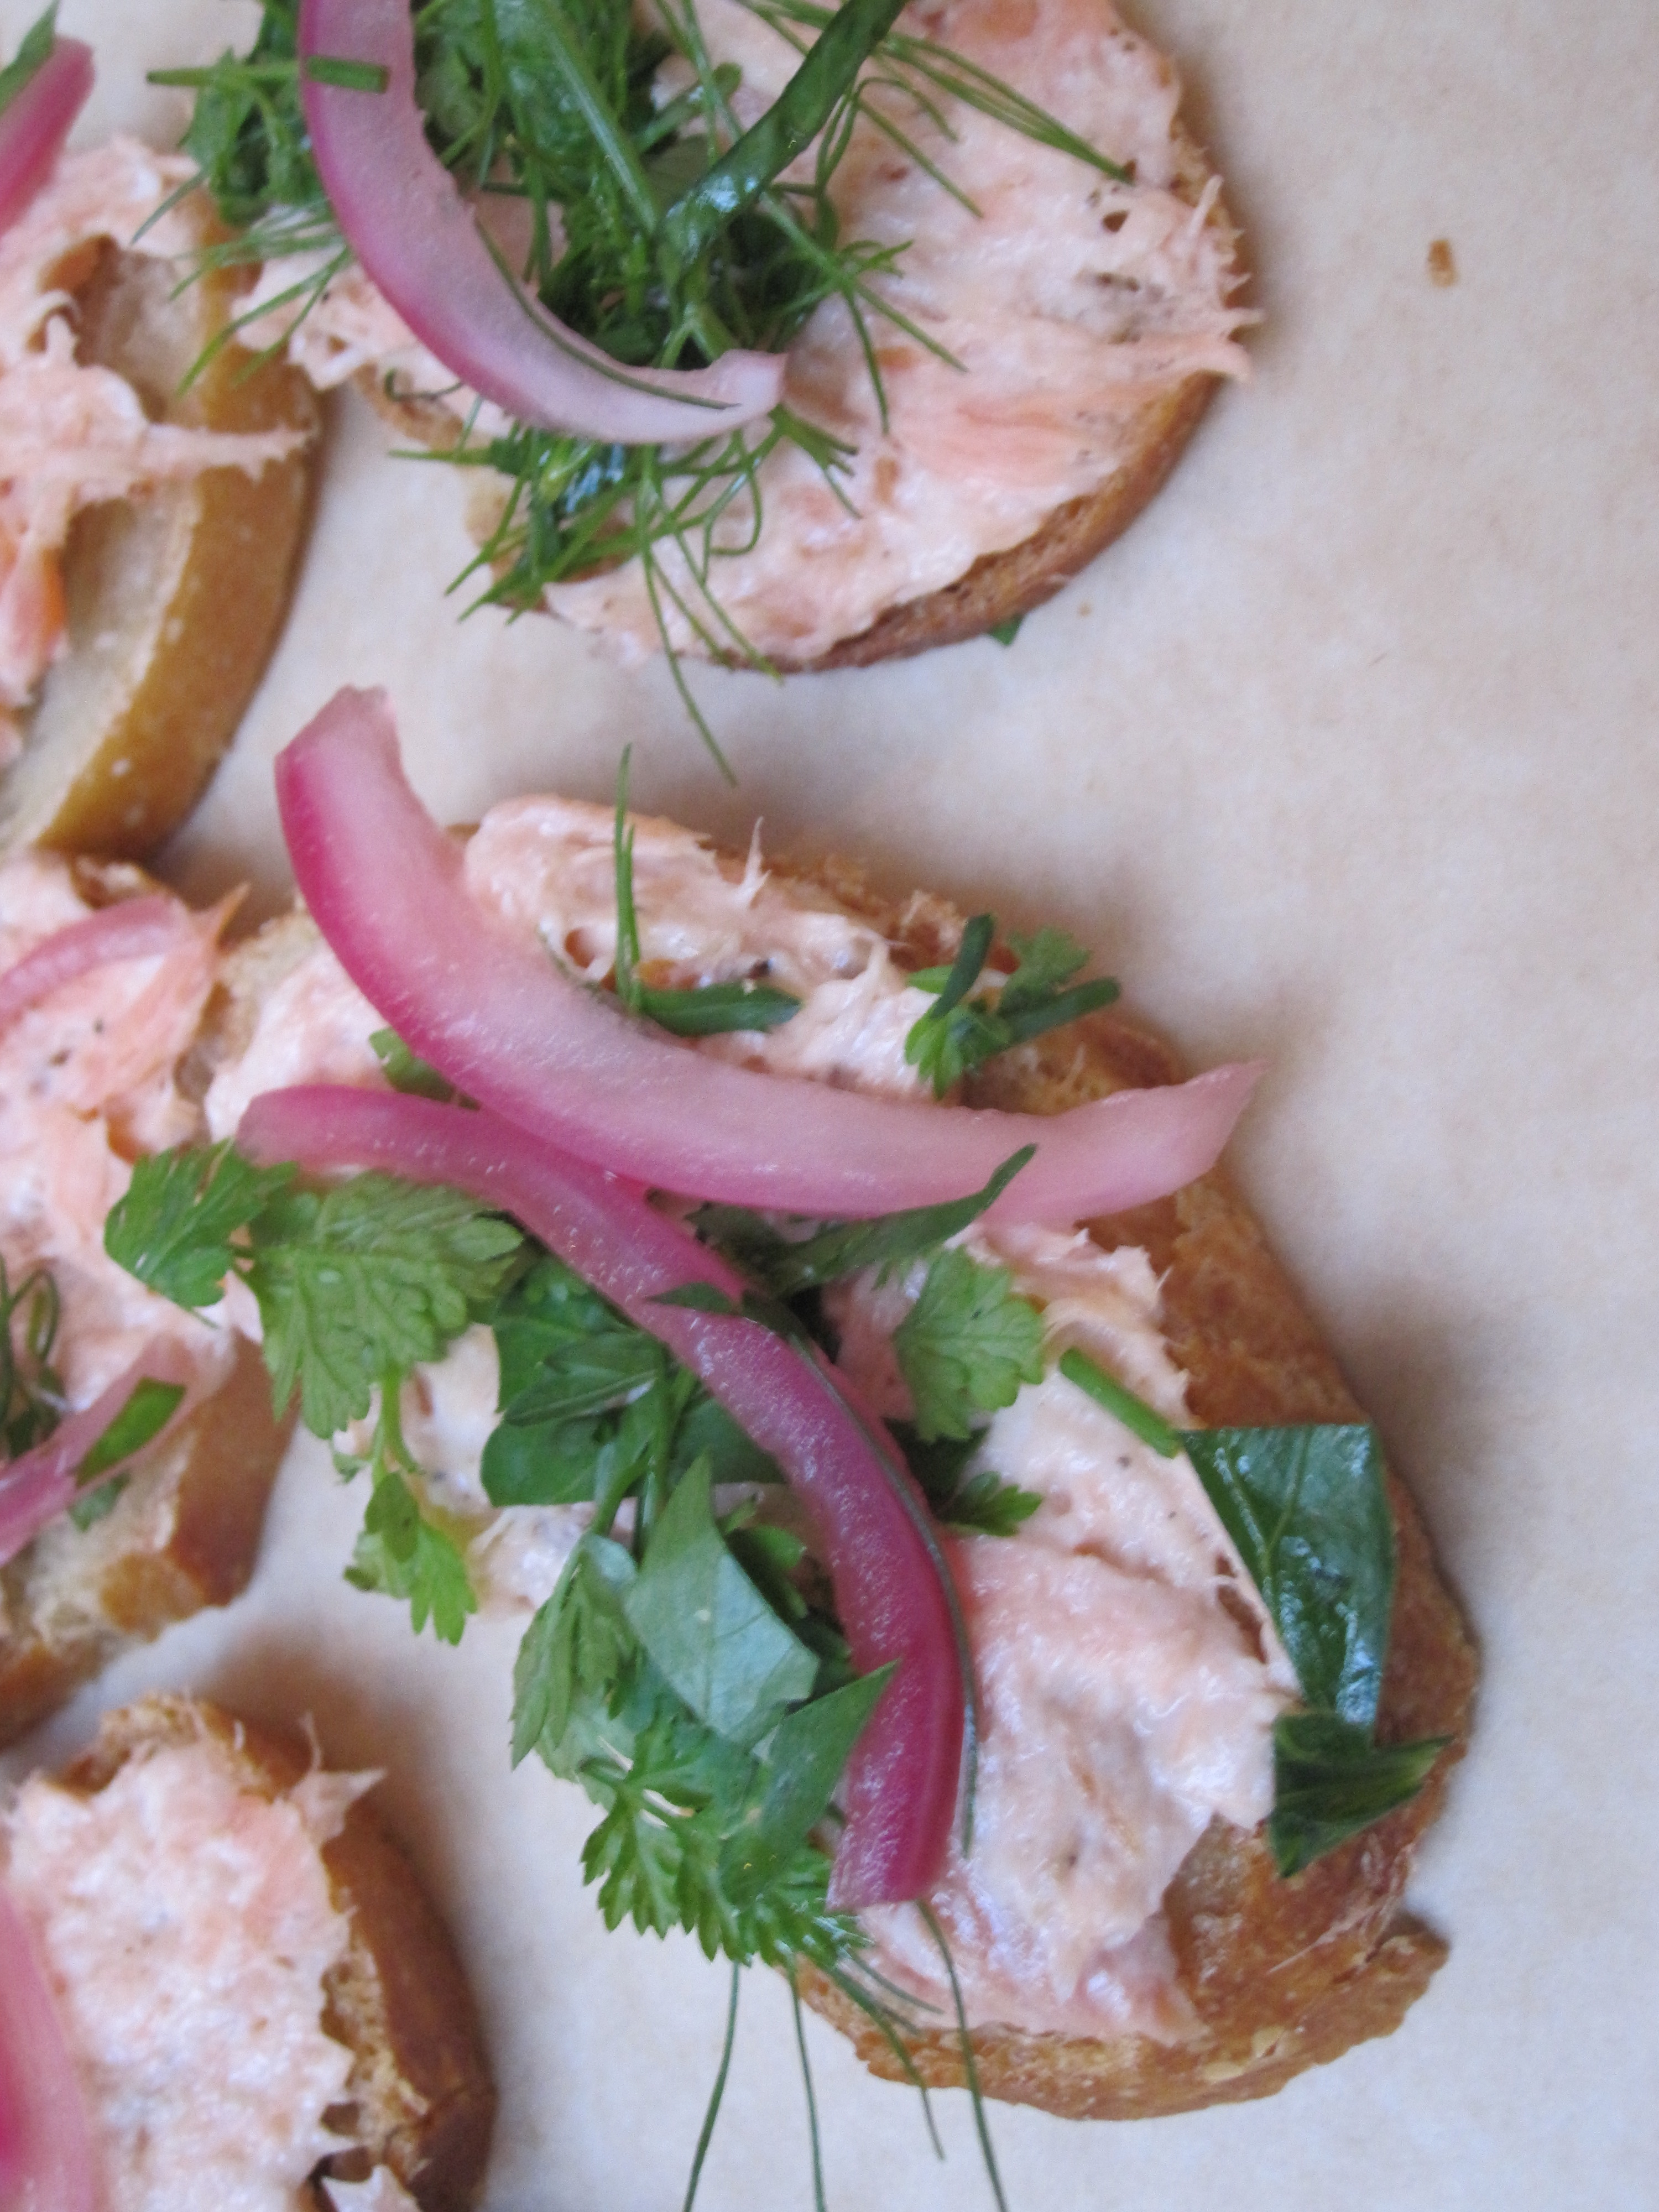 Hog and Rocks served a scrumptious smoked fish crostini.